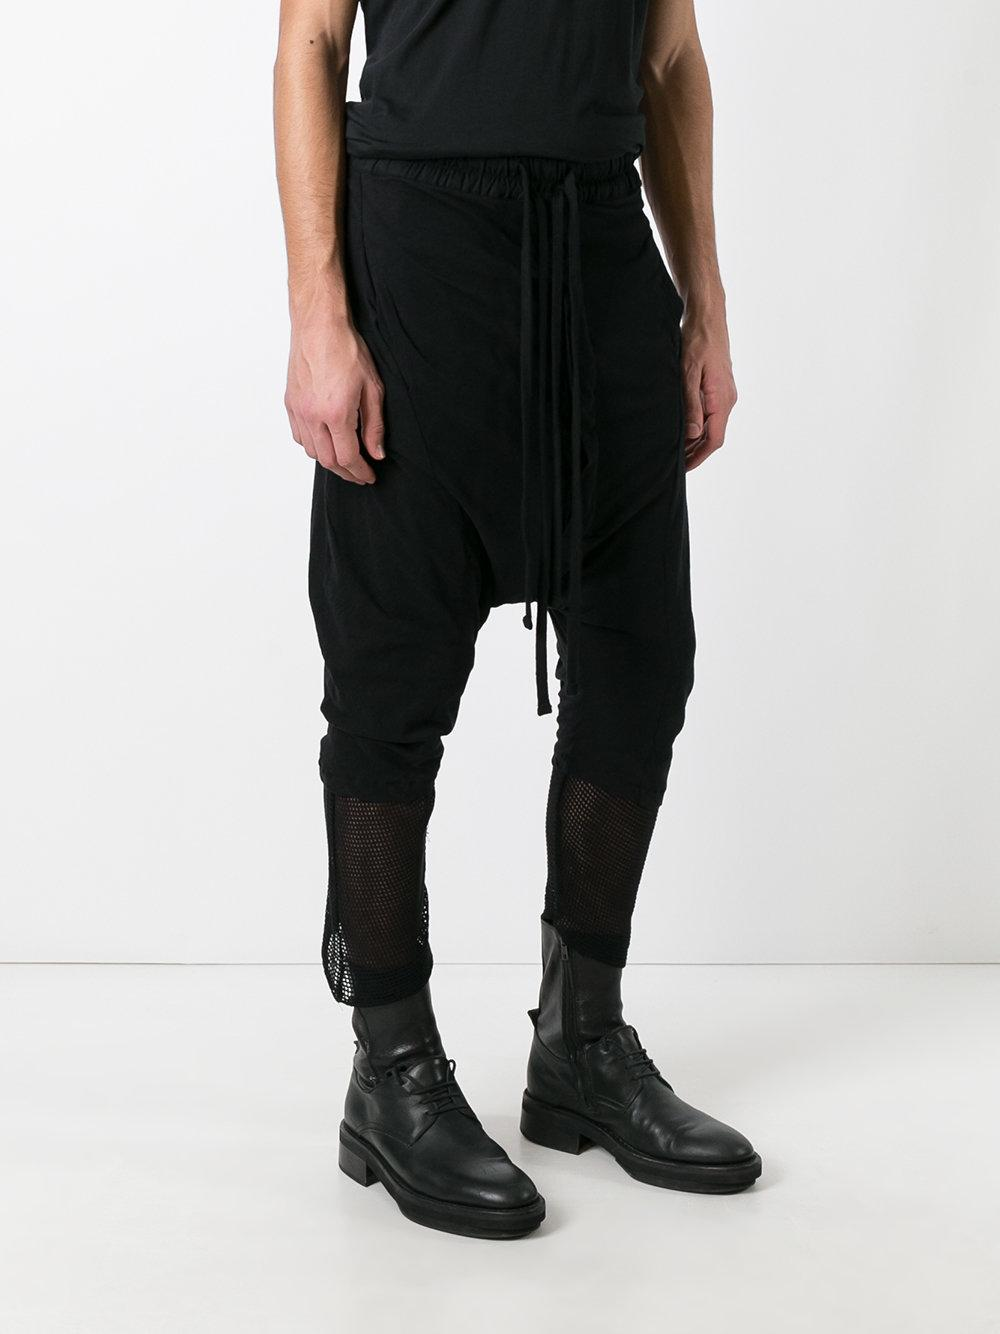 Thom krom Drop-crotch Trousers in Black for Men